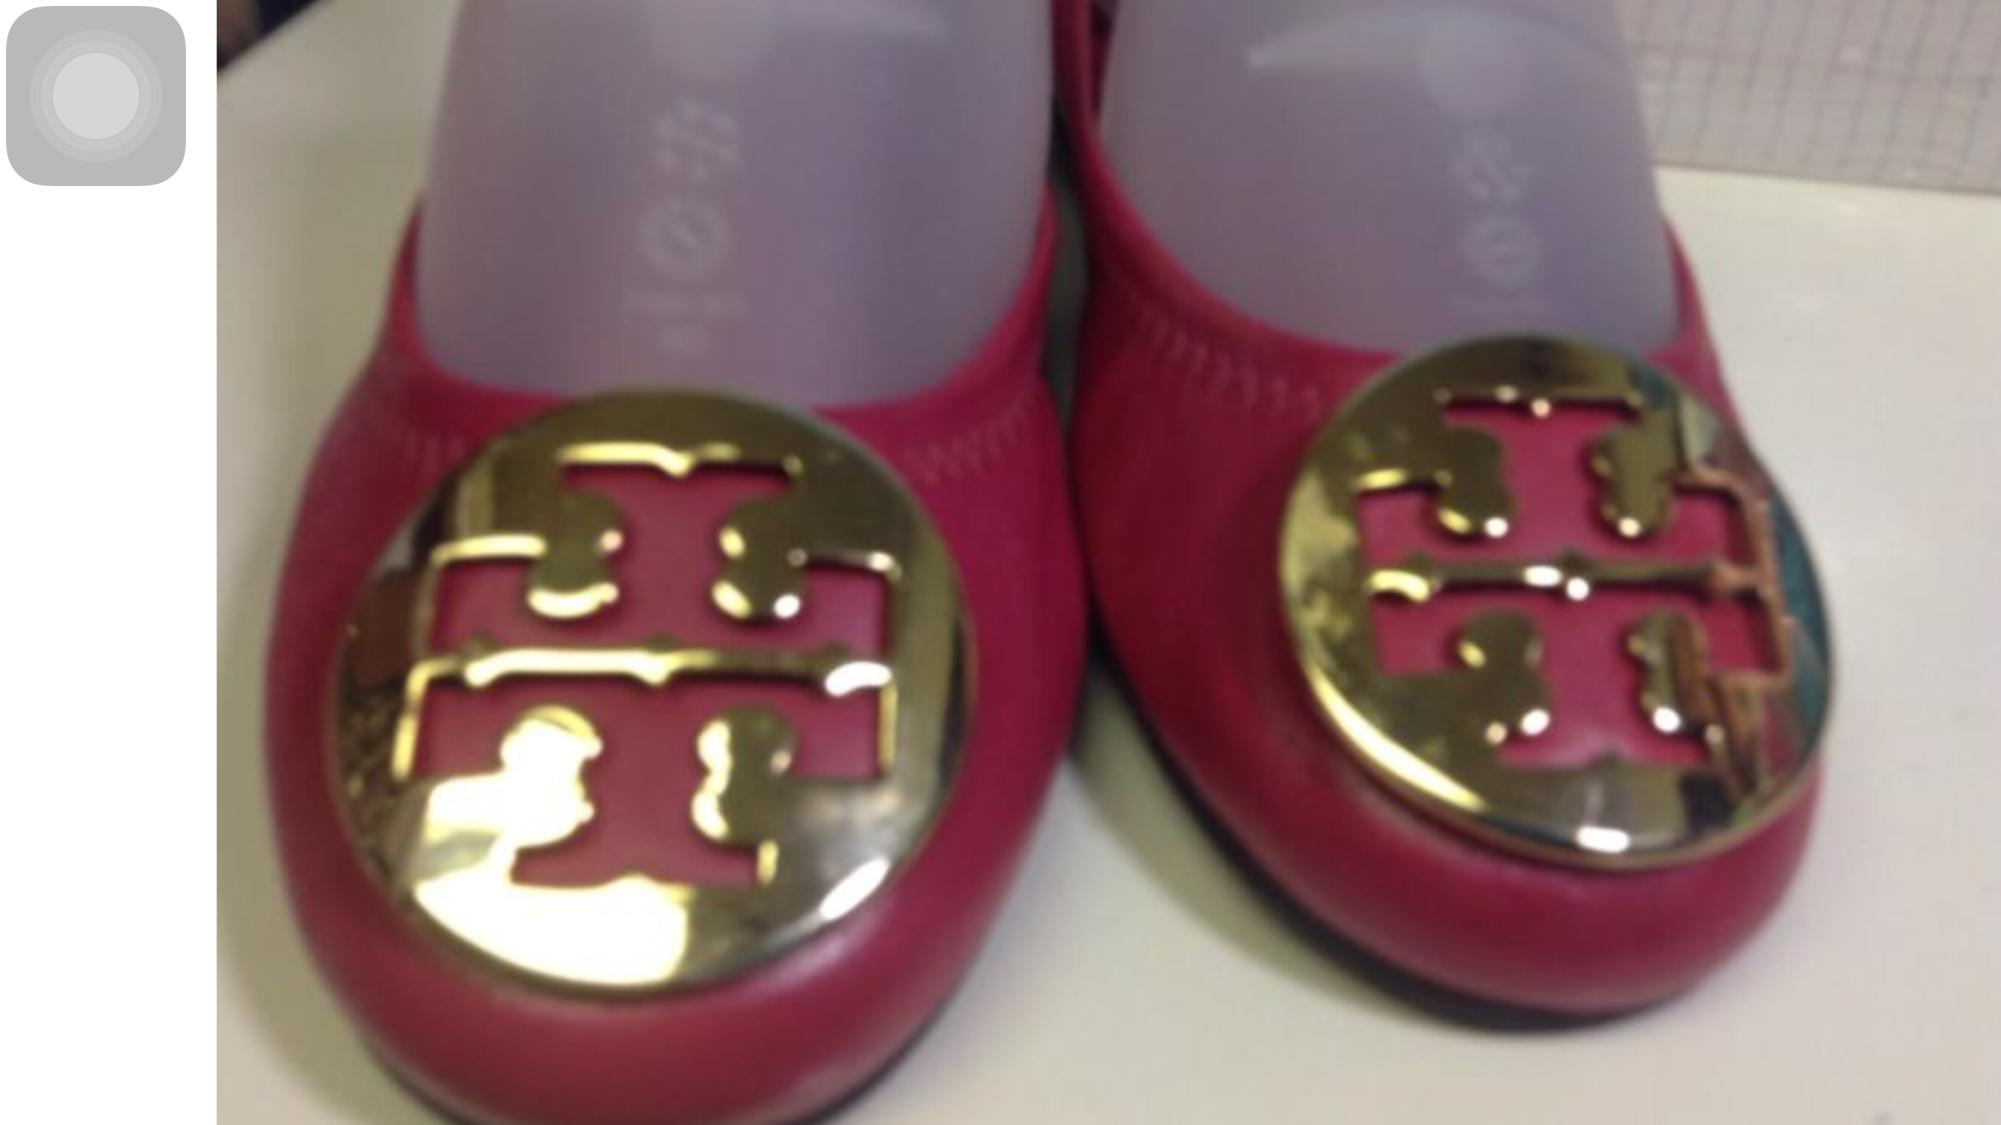 tory burch fuchsia apparteHommes ts ordinaires (taille 5 m, m, m, b) 05d6f8